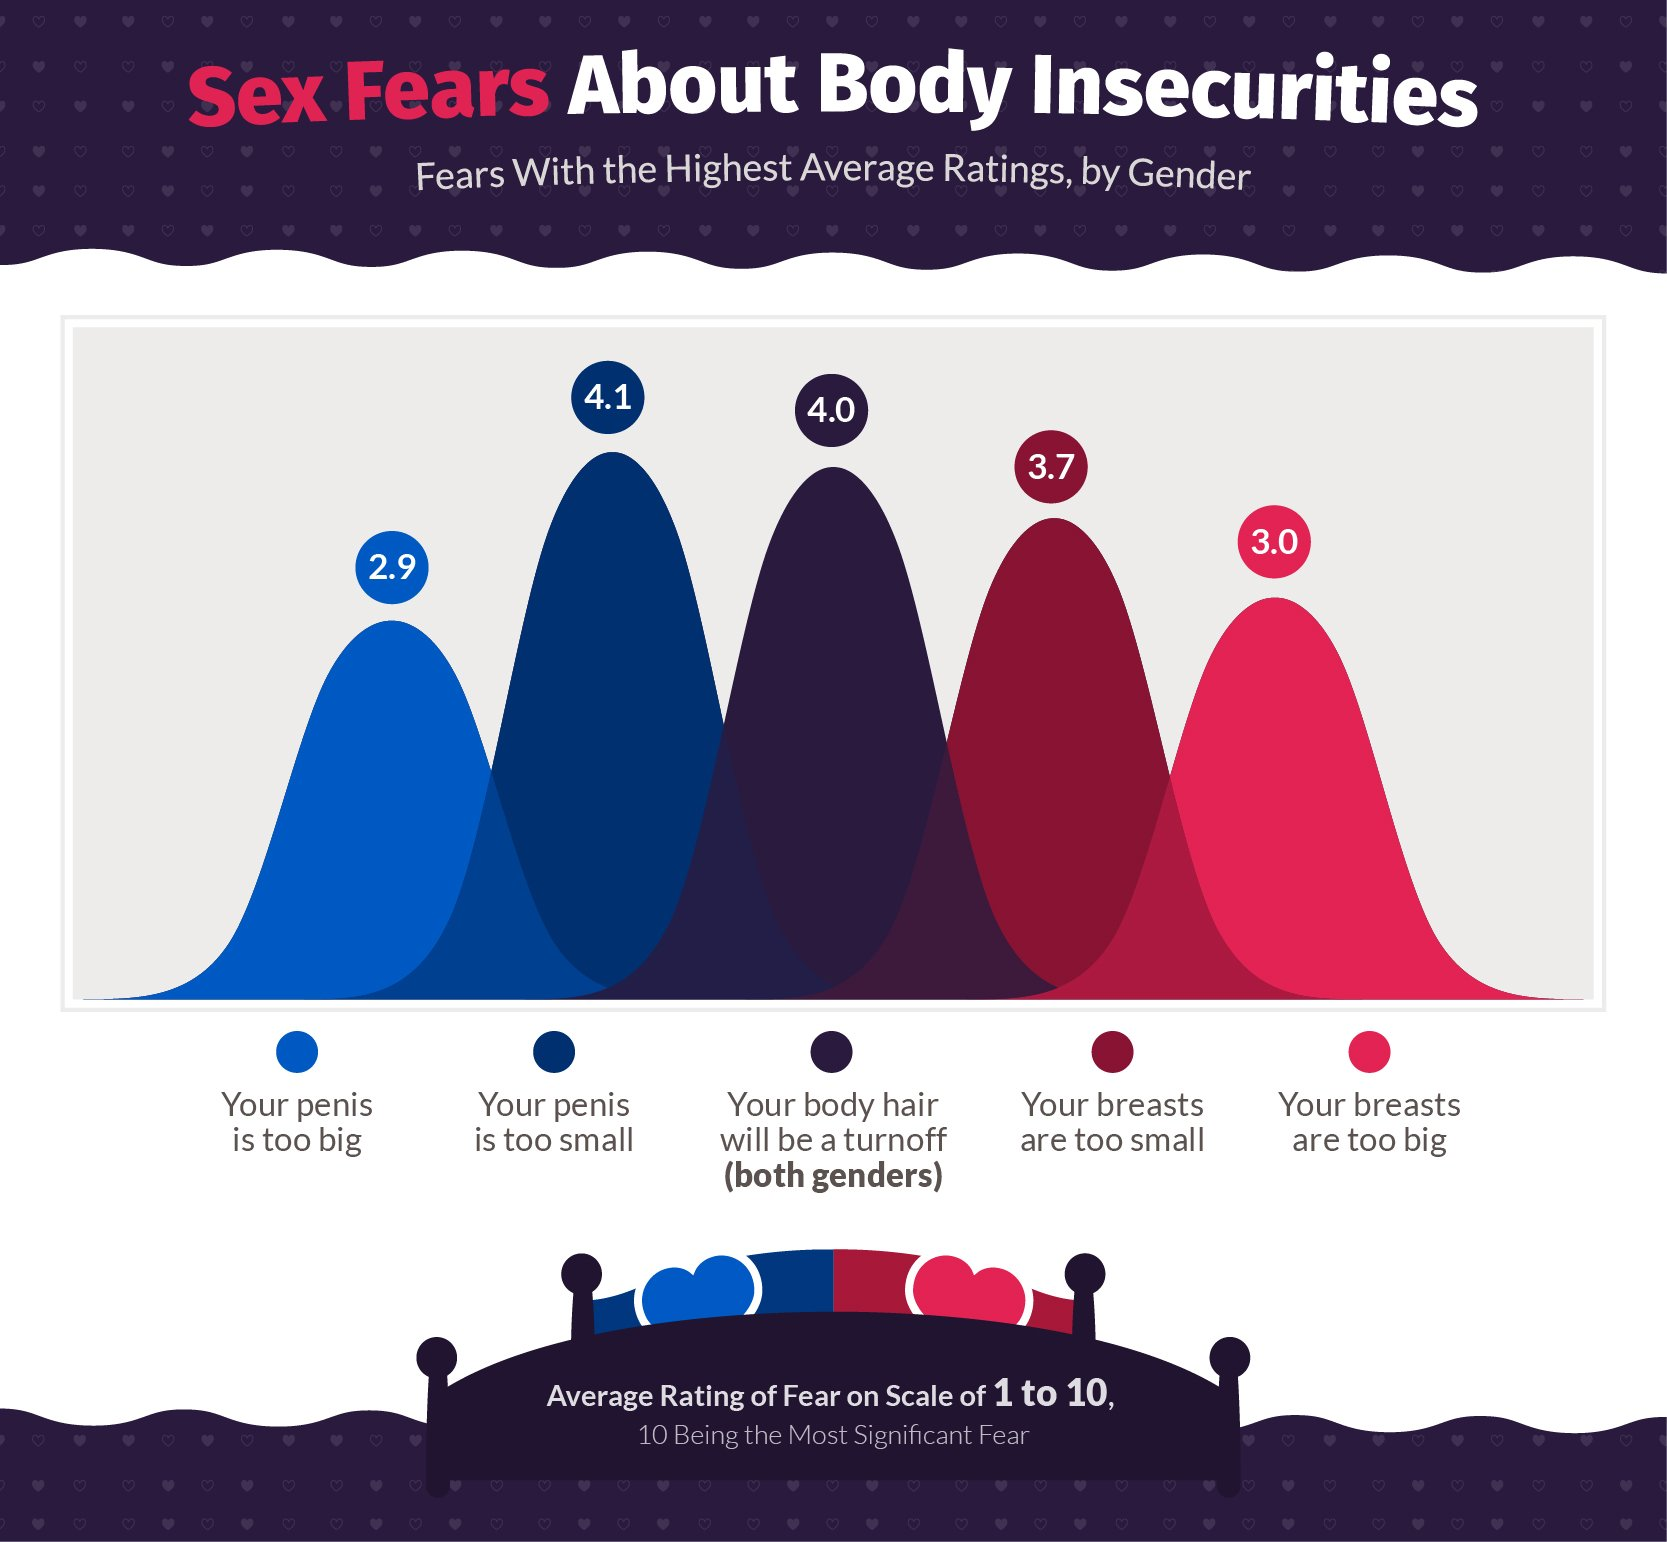 Sex Fears About Body Insecurities